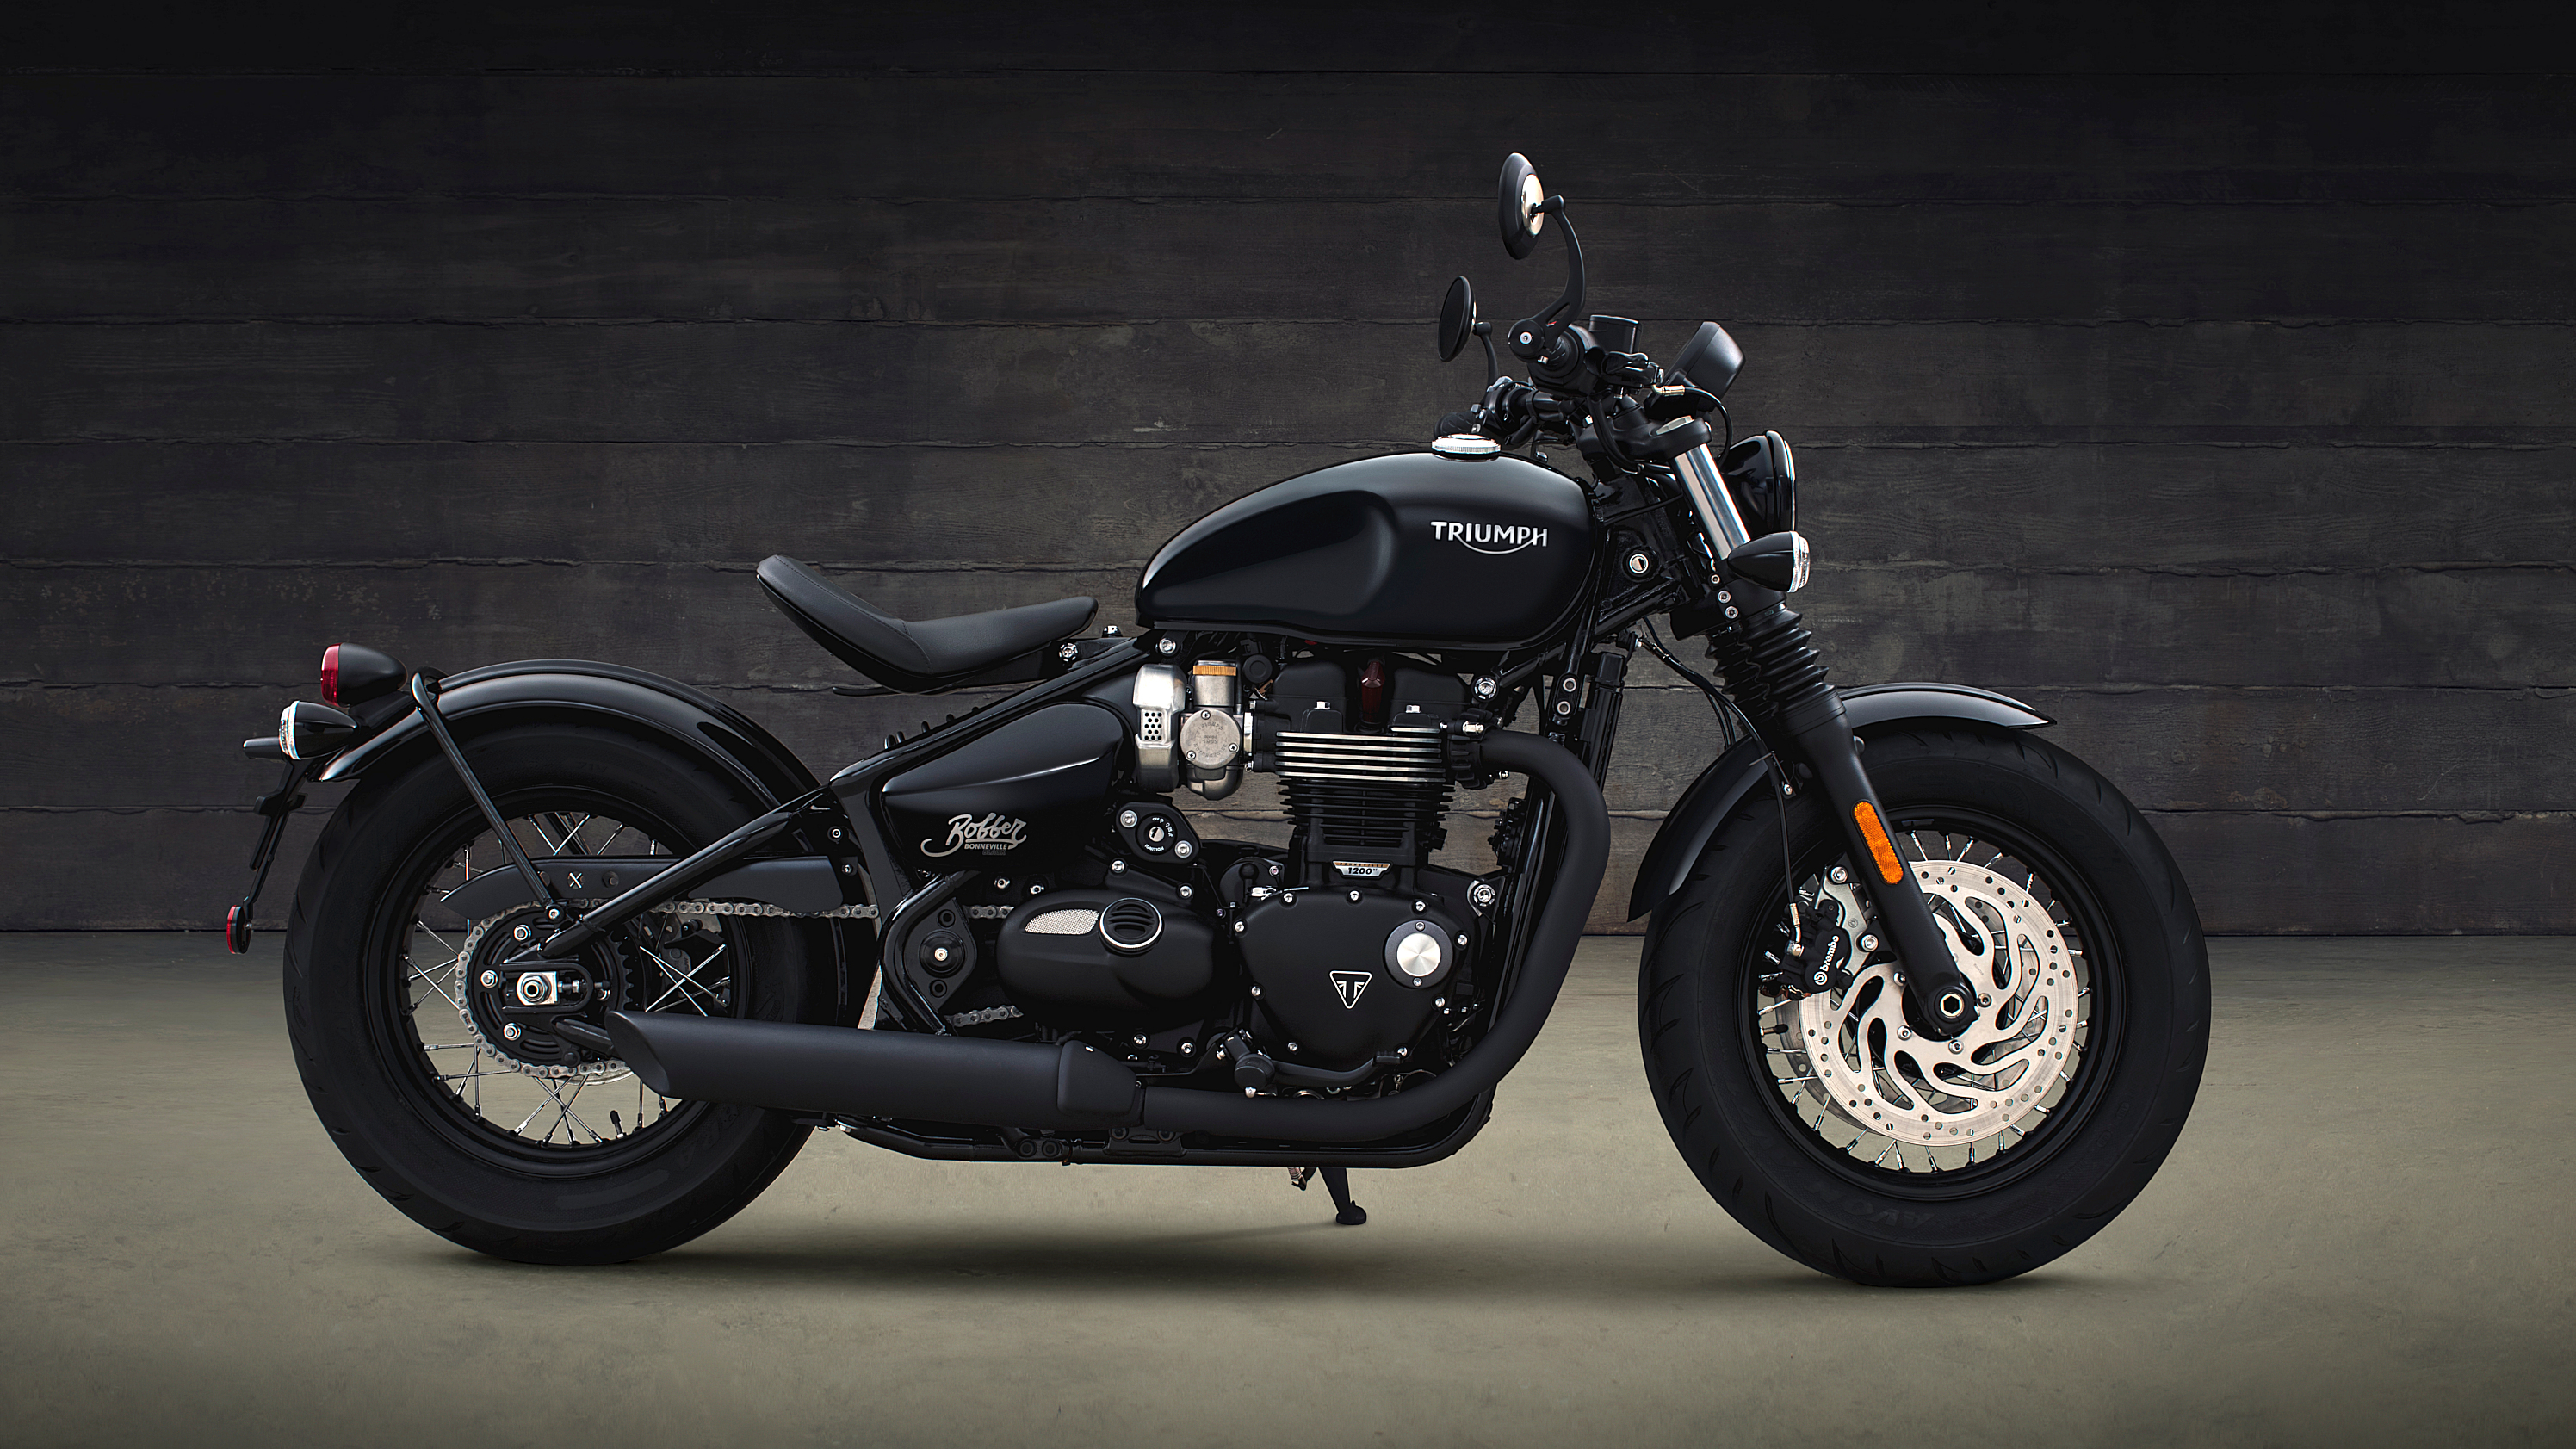 2018 Triumph Bonneville Bobber Black | Top Speed. »